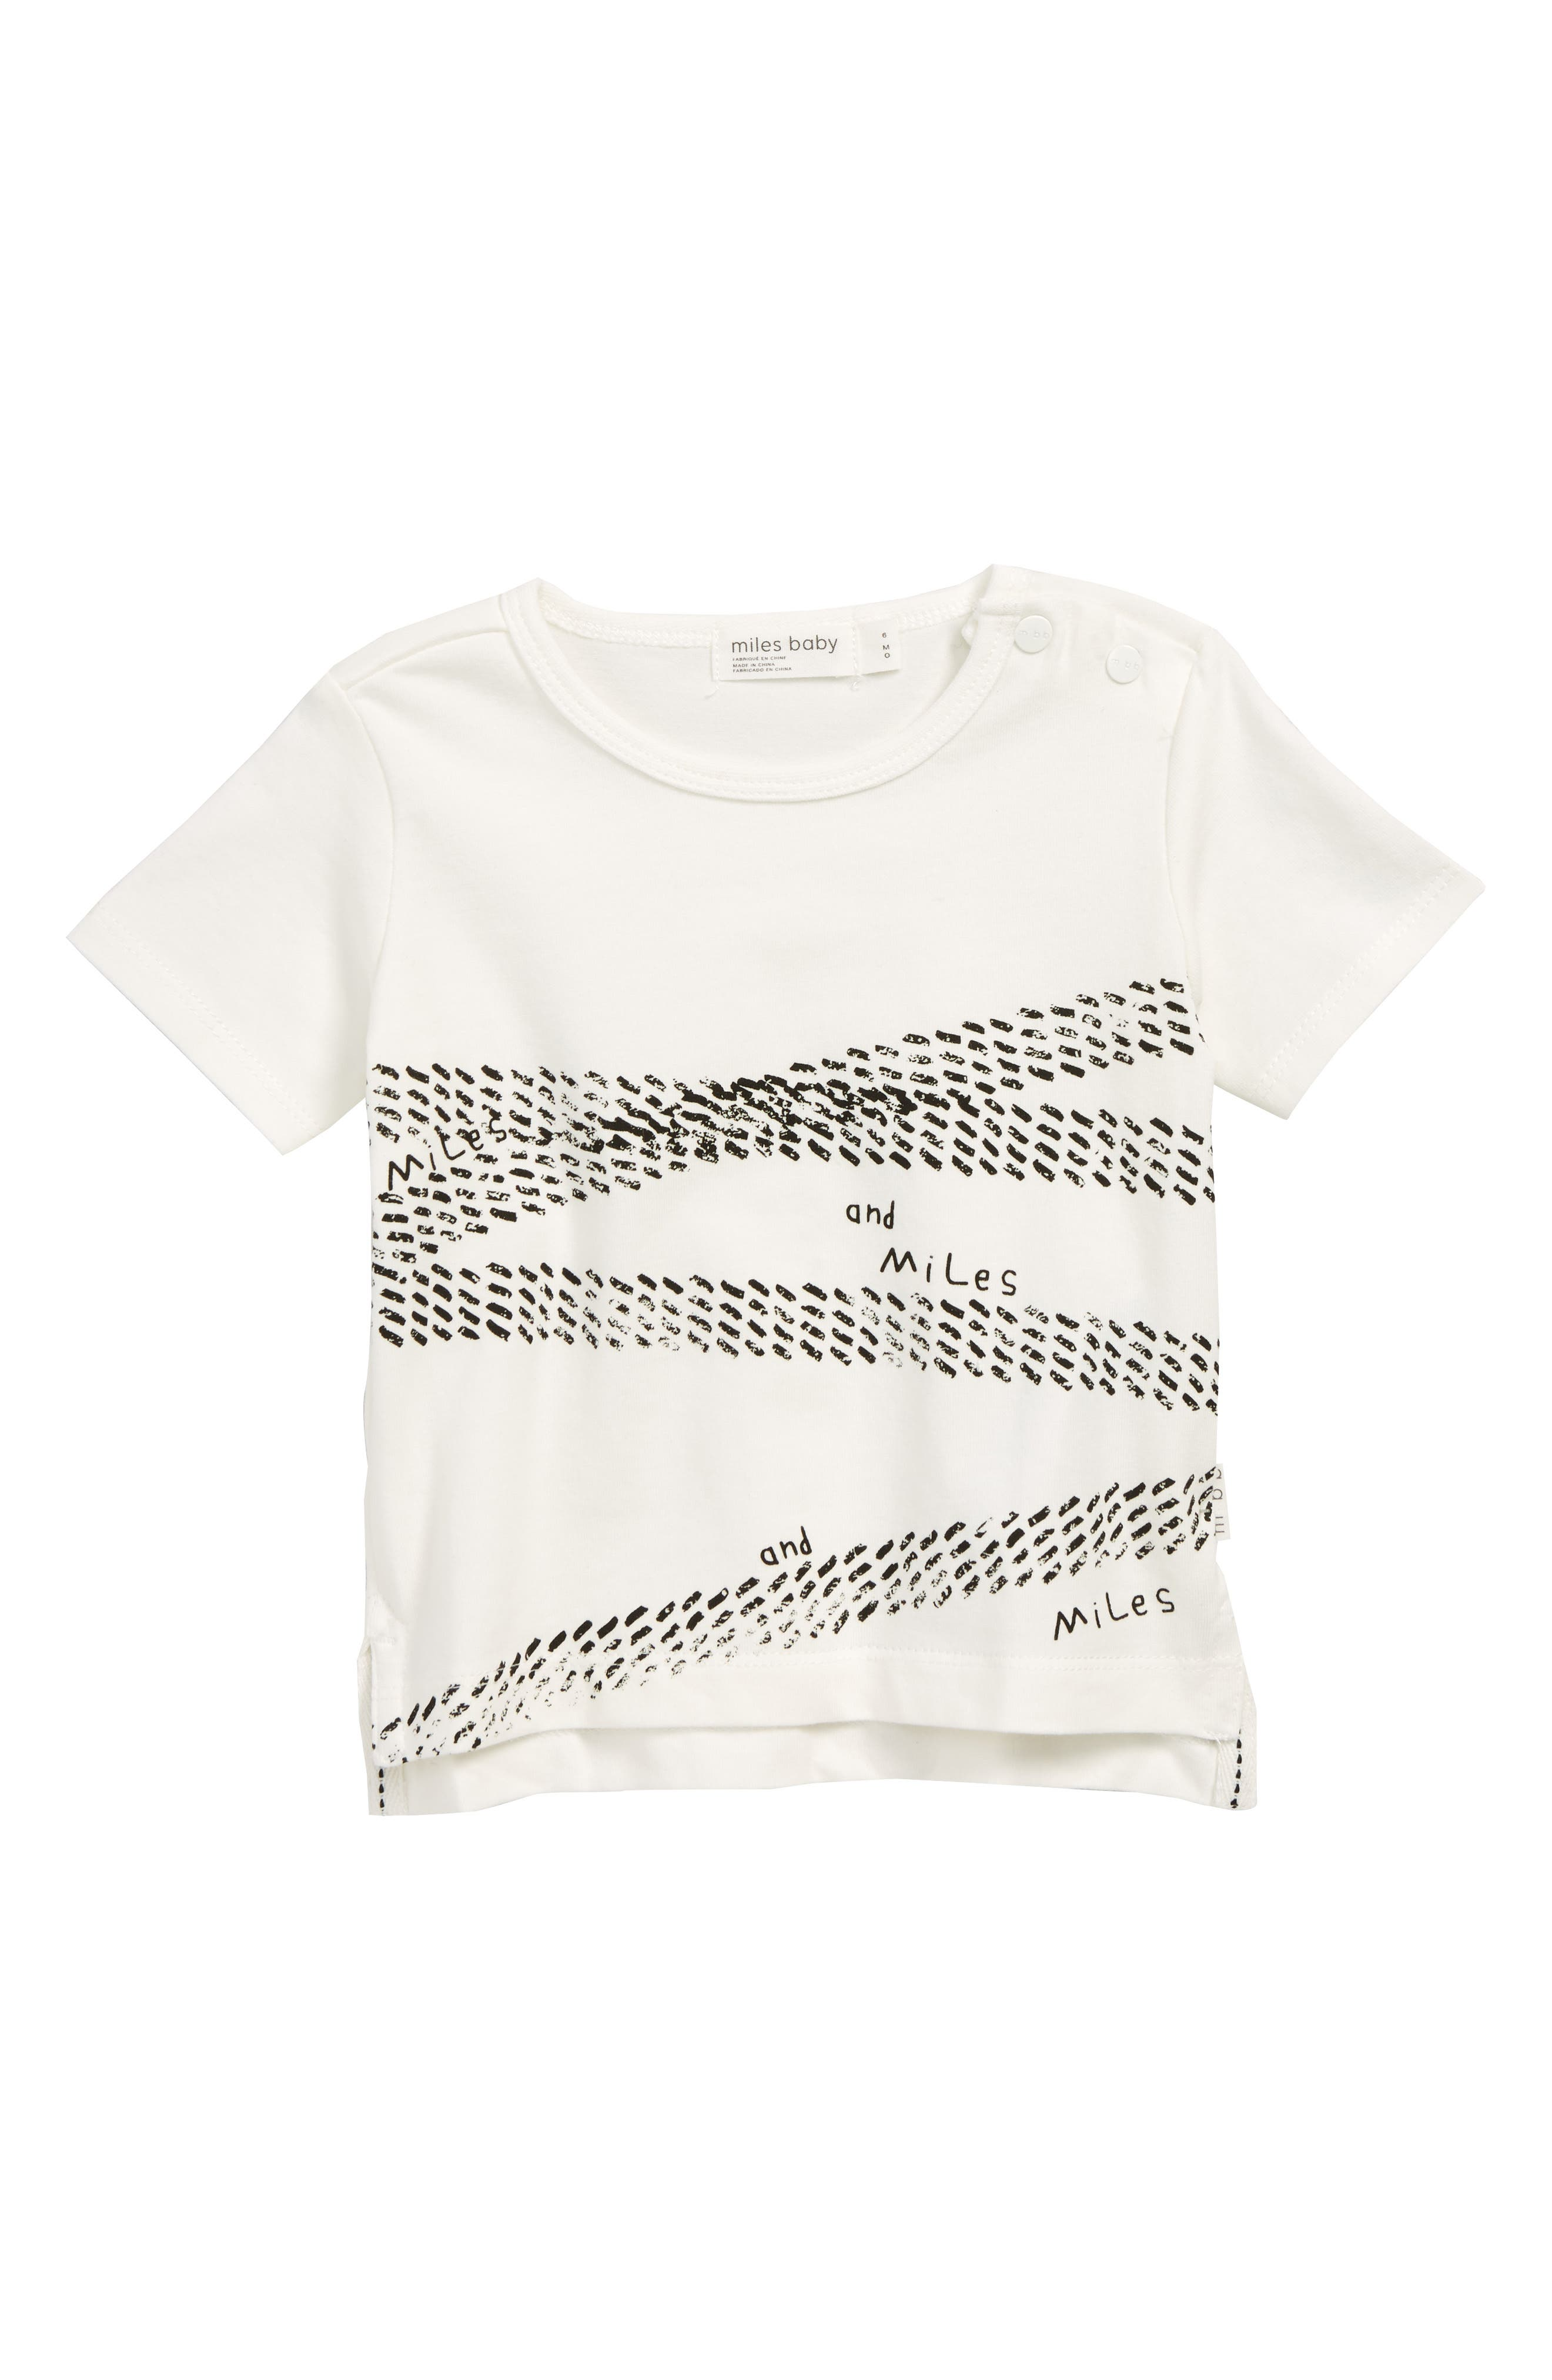 MILES BABY,                             T-Shirt,                             Main thumbnail 1, color,                             OFF WHITE